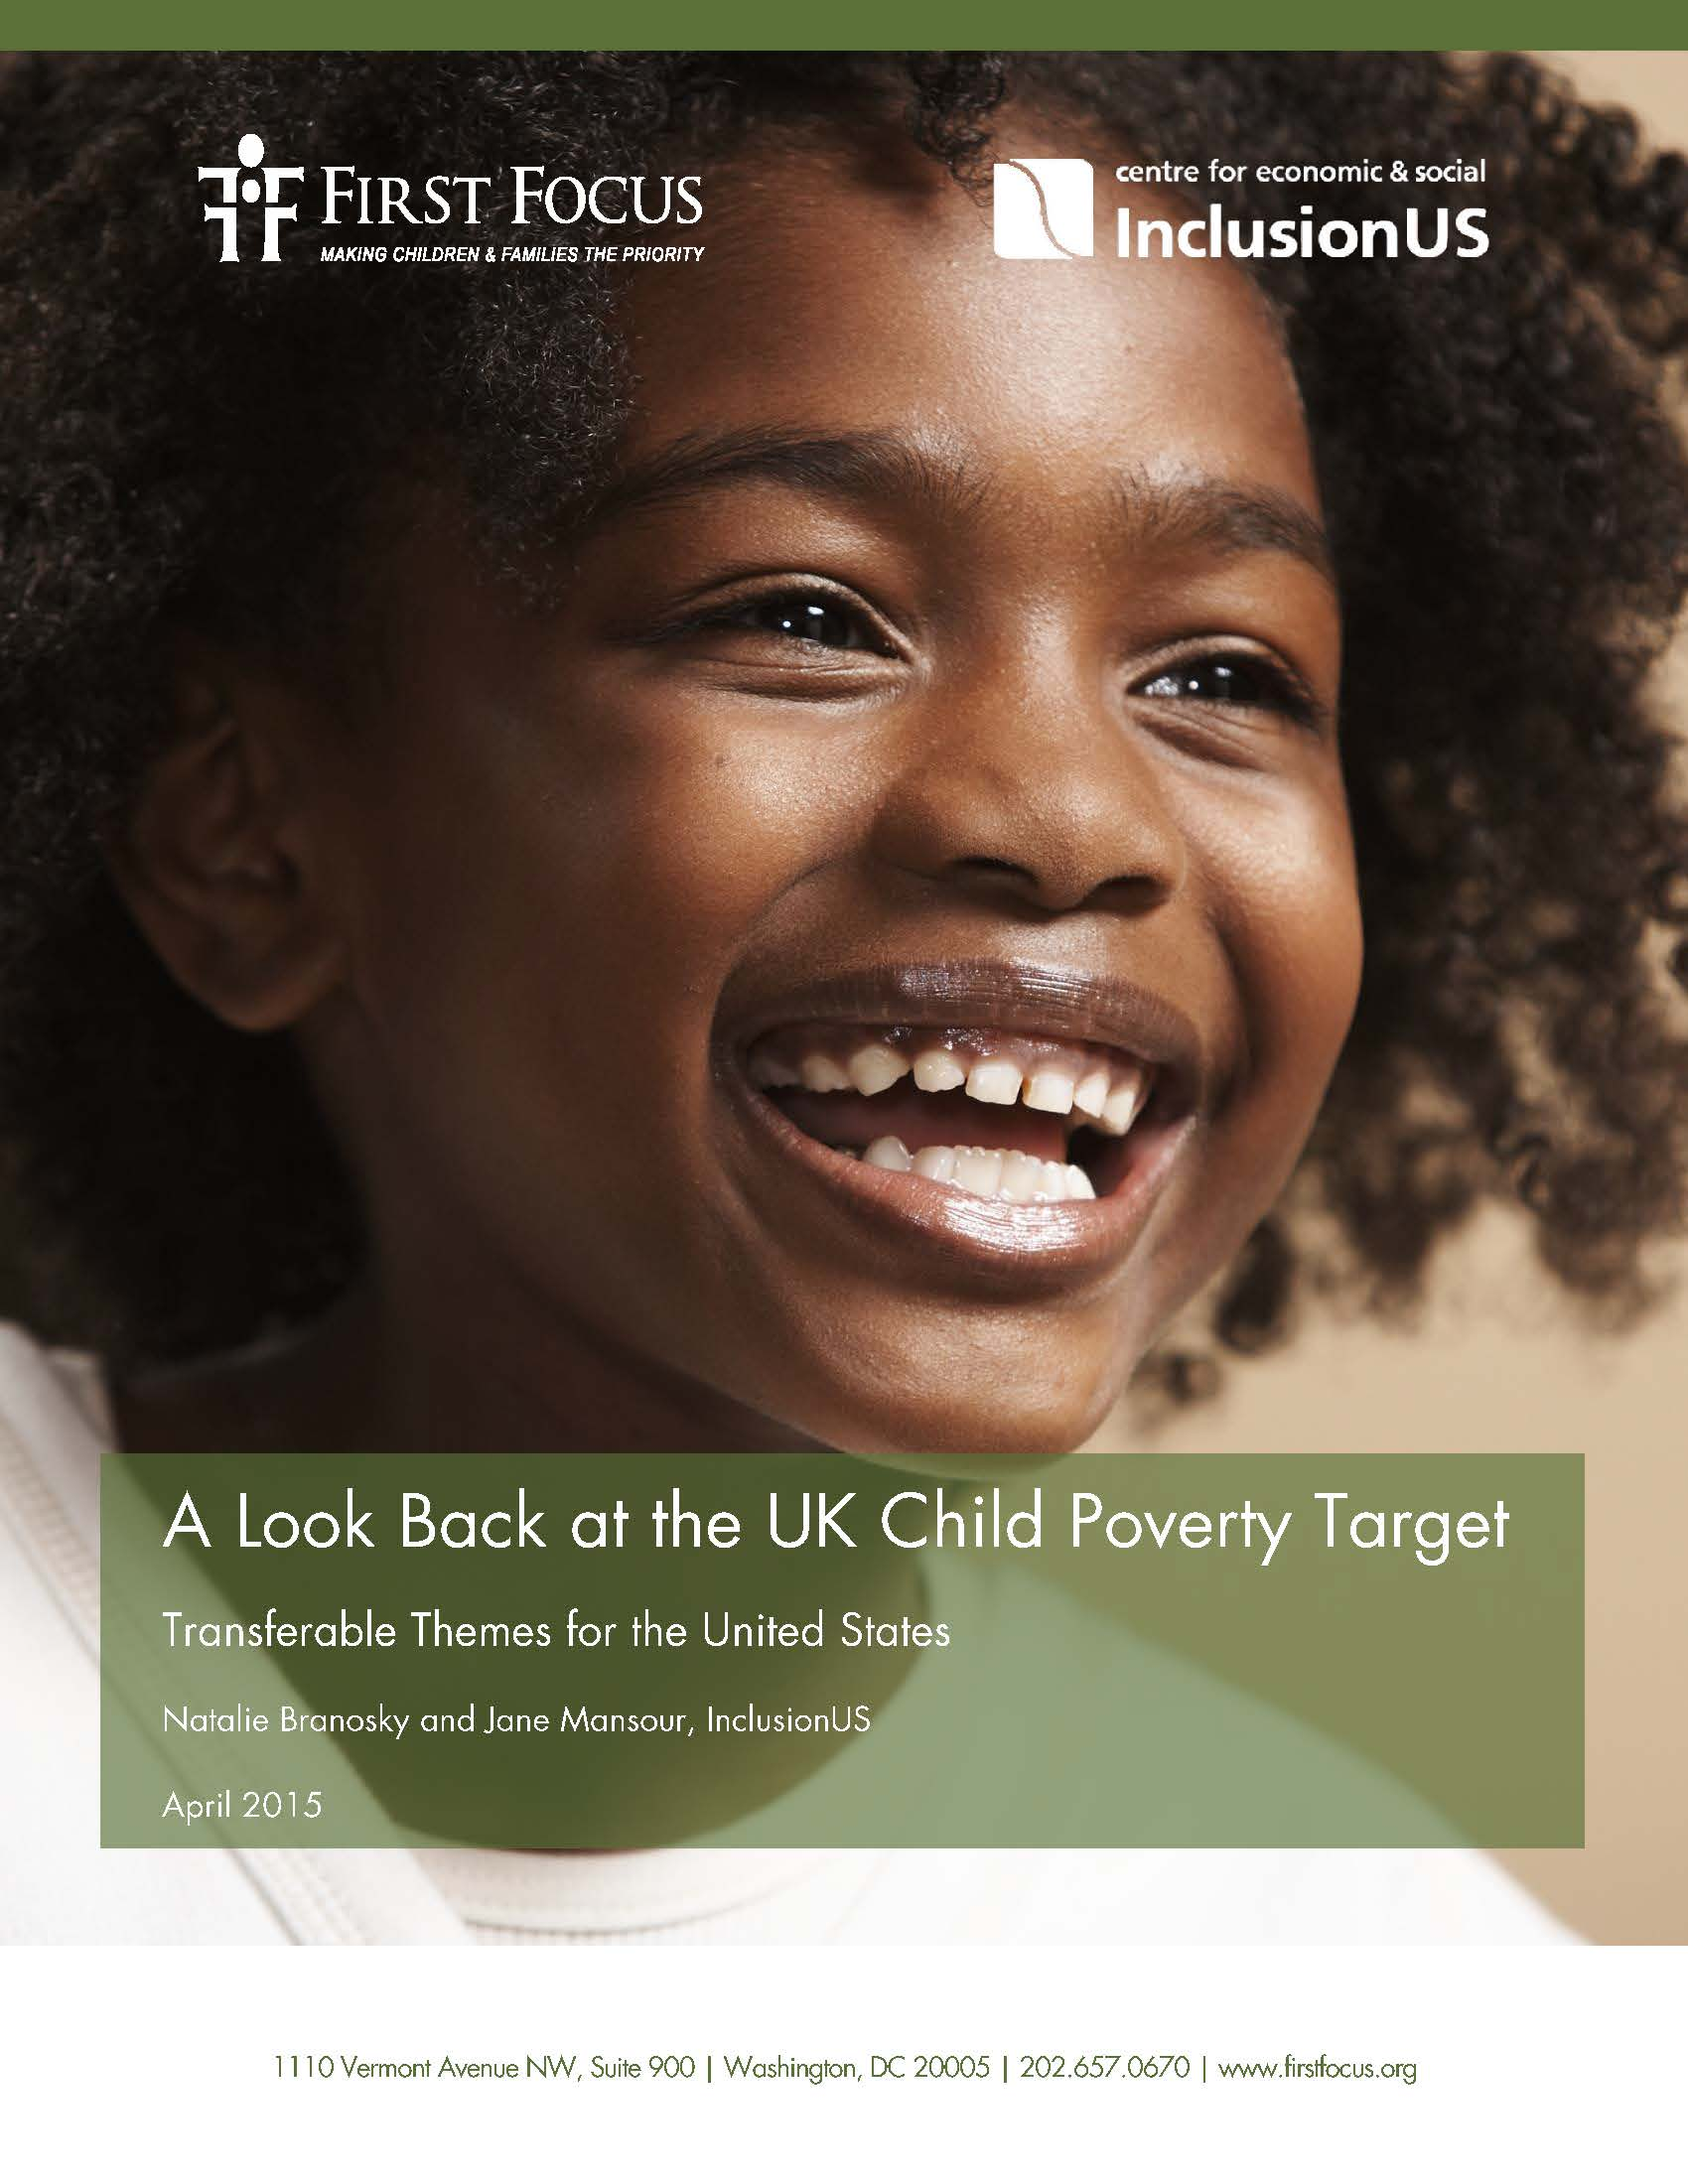 A Look Back at the UK Child Poverty Target Transferable Themes for the United States